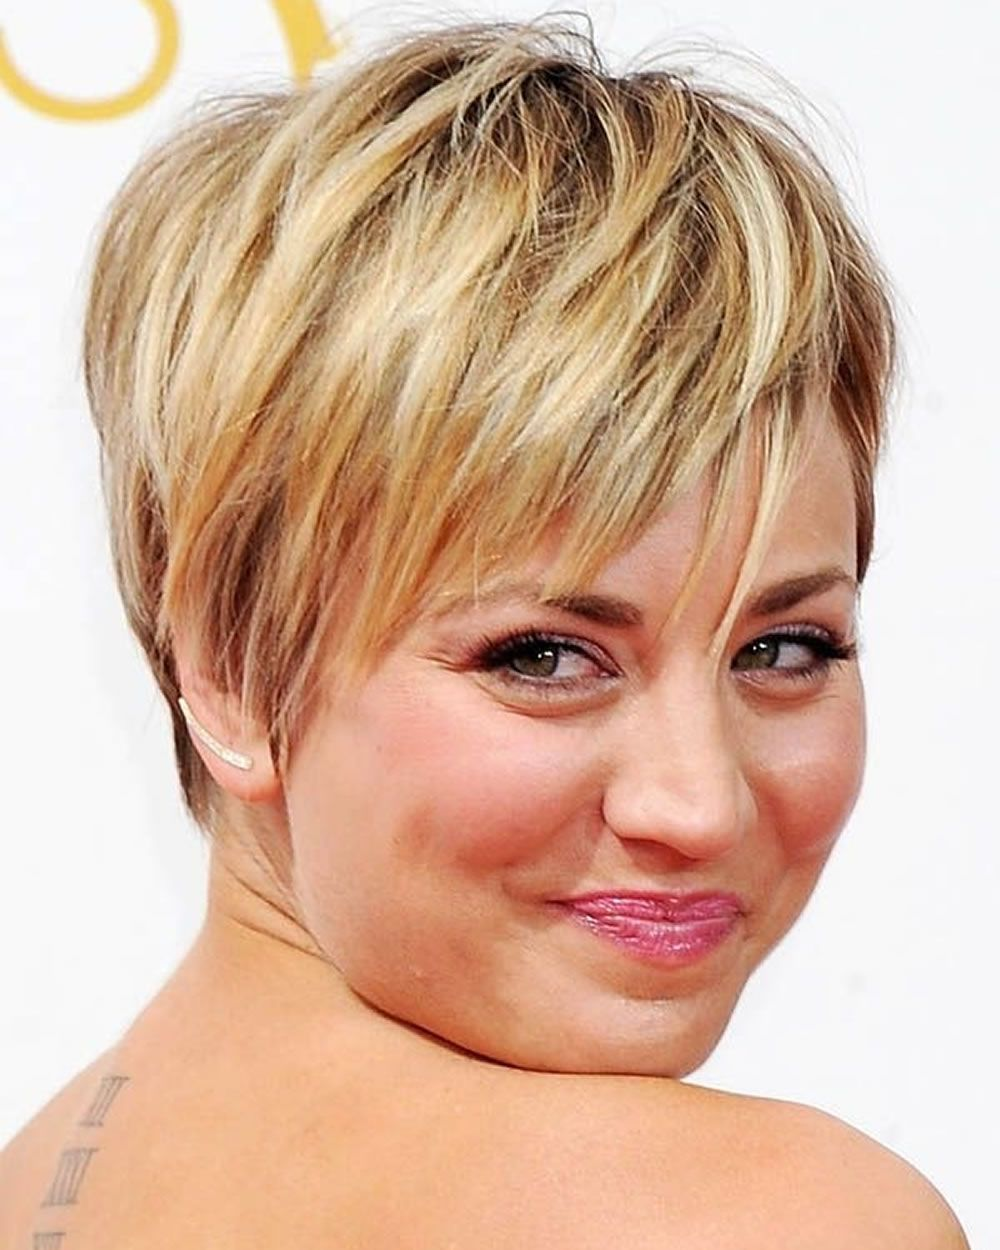 Short Hairstyles For Round Faces And Thin Hair  Short hair styles